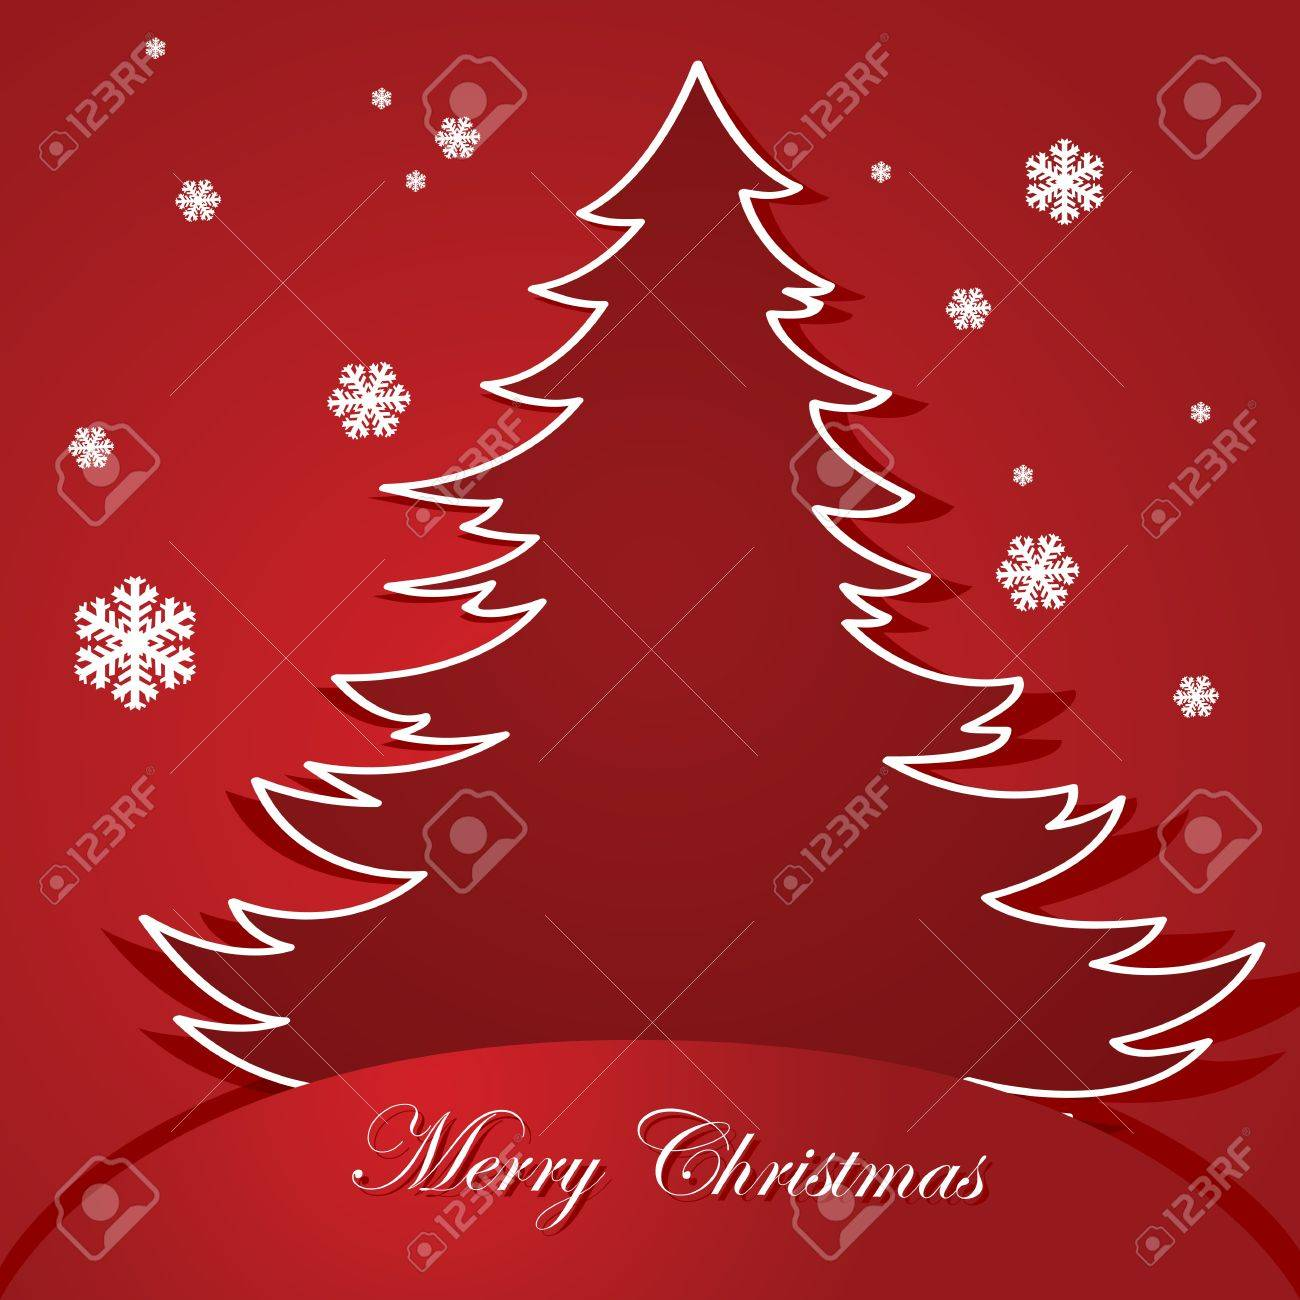 Christmas themed illustration showing a red background and a cartoon tree tucked inside a pocket in the middle of the page Stock Vector - 16383769